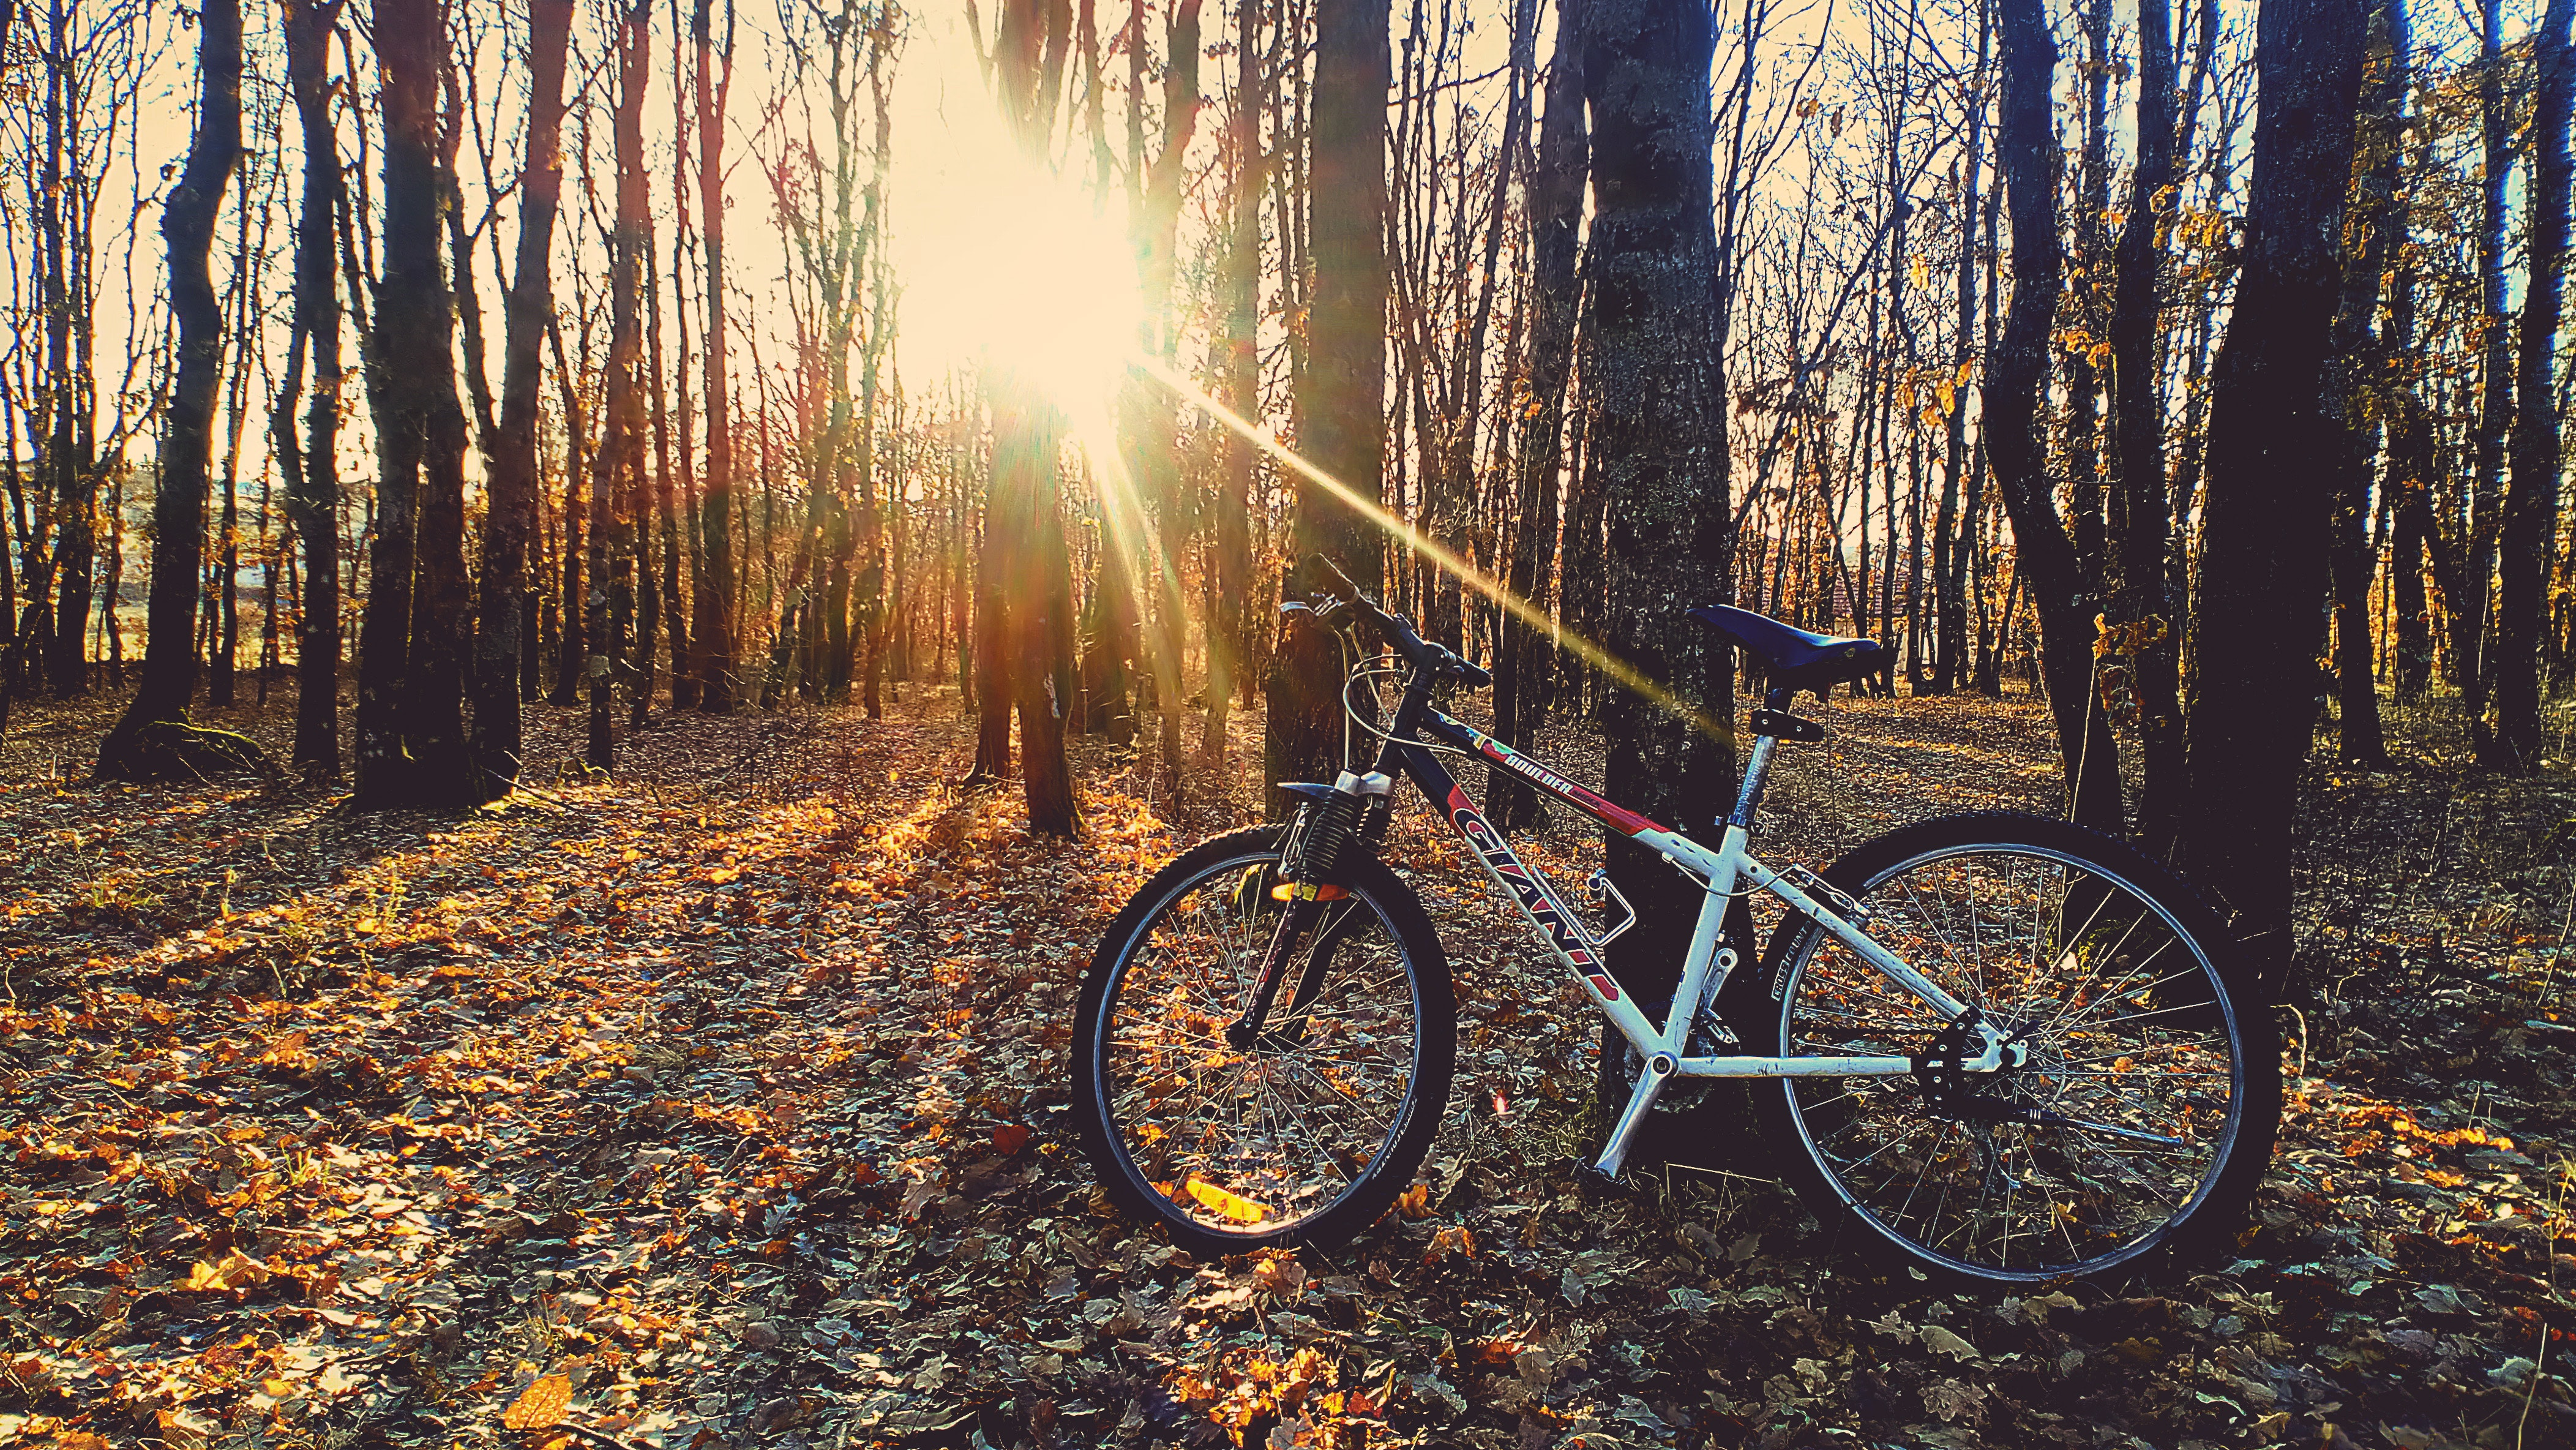 Red and White Hardtail Bike, Bicycle, Outdoors, Wheels, Trees, HQ Photo